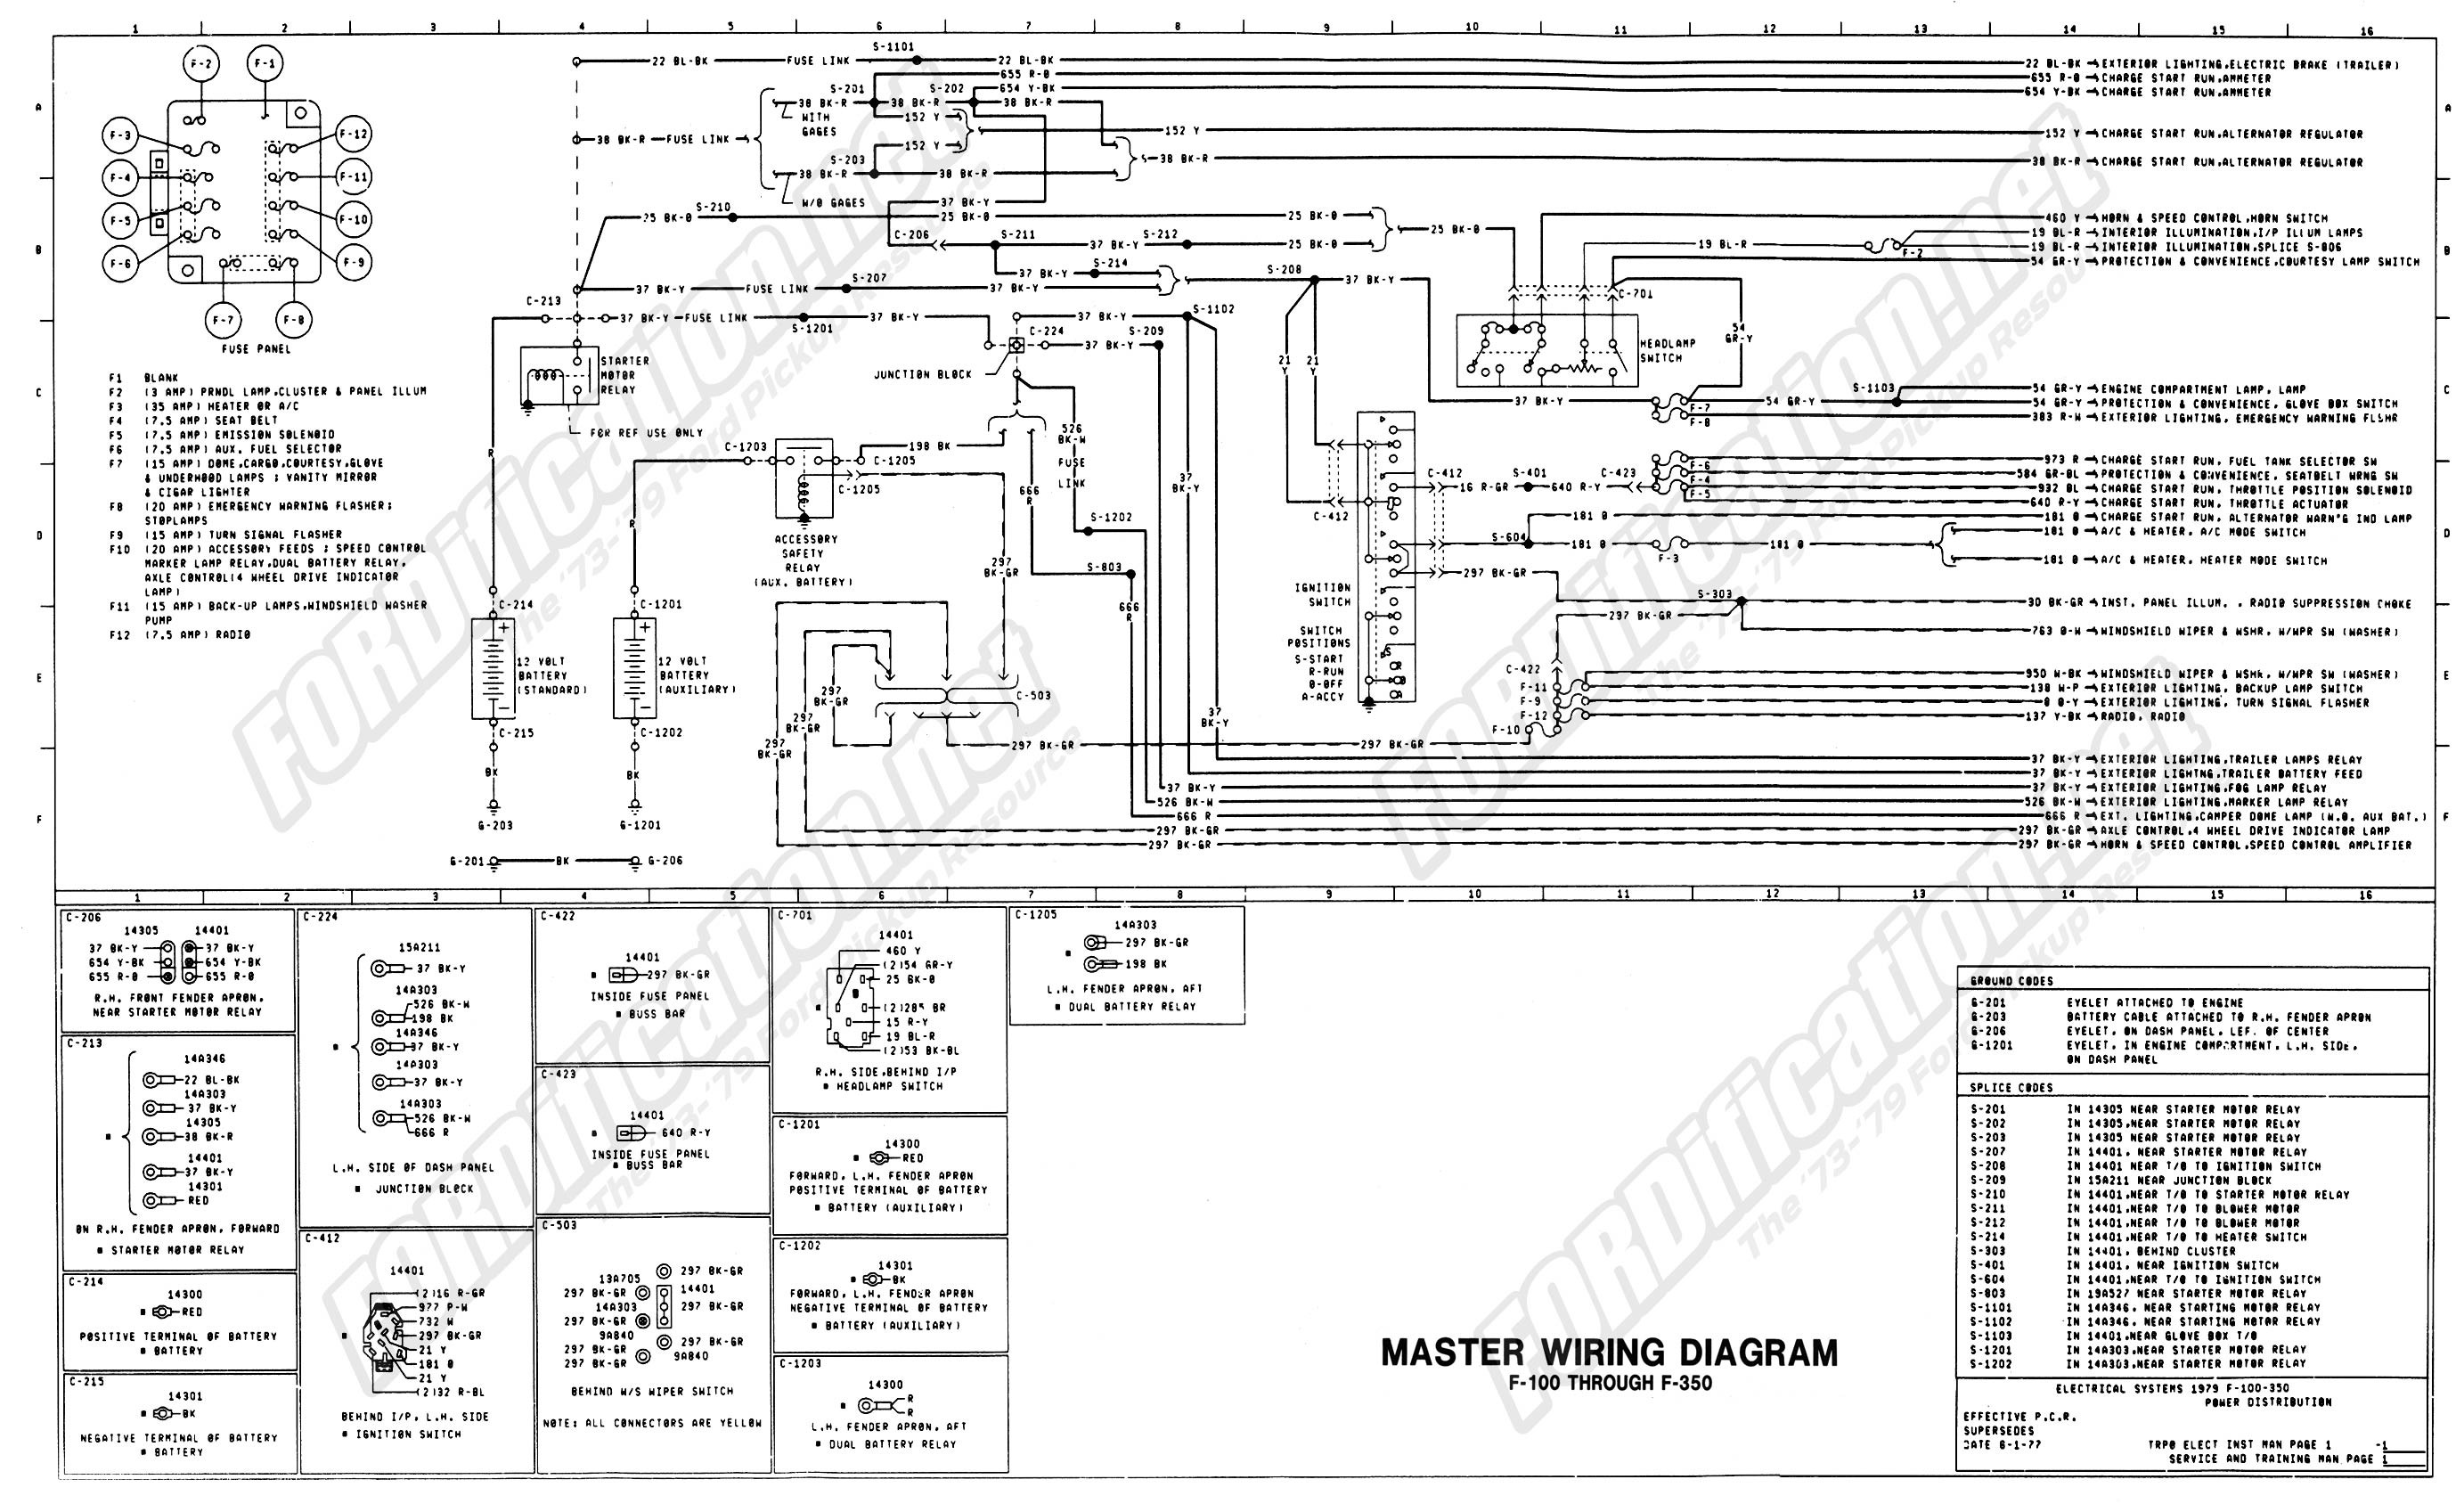 1971 Chevy Truck Wiring Diagram Inspirational Image Heavy 79master 1of9 For 79